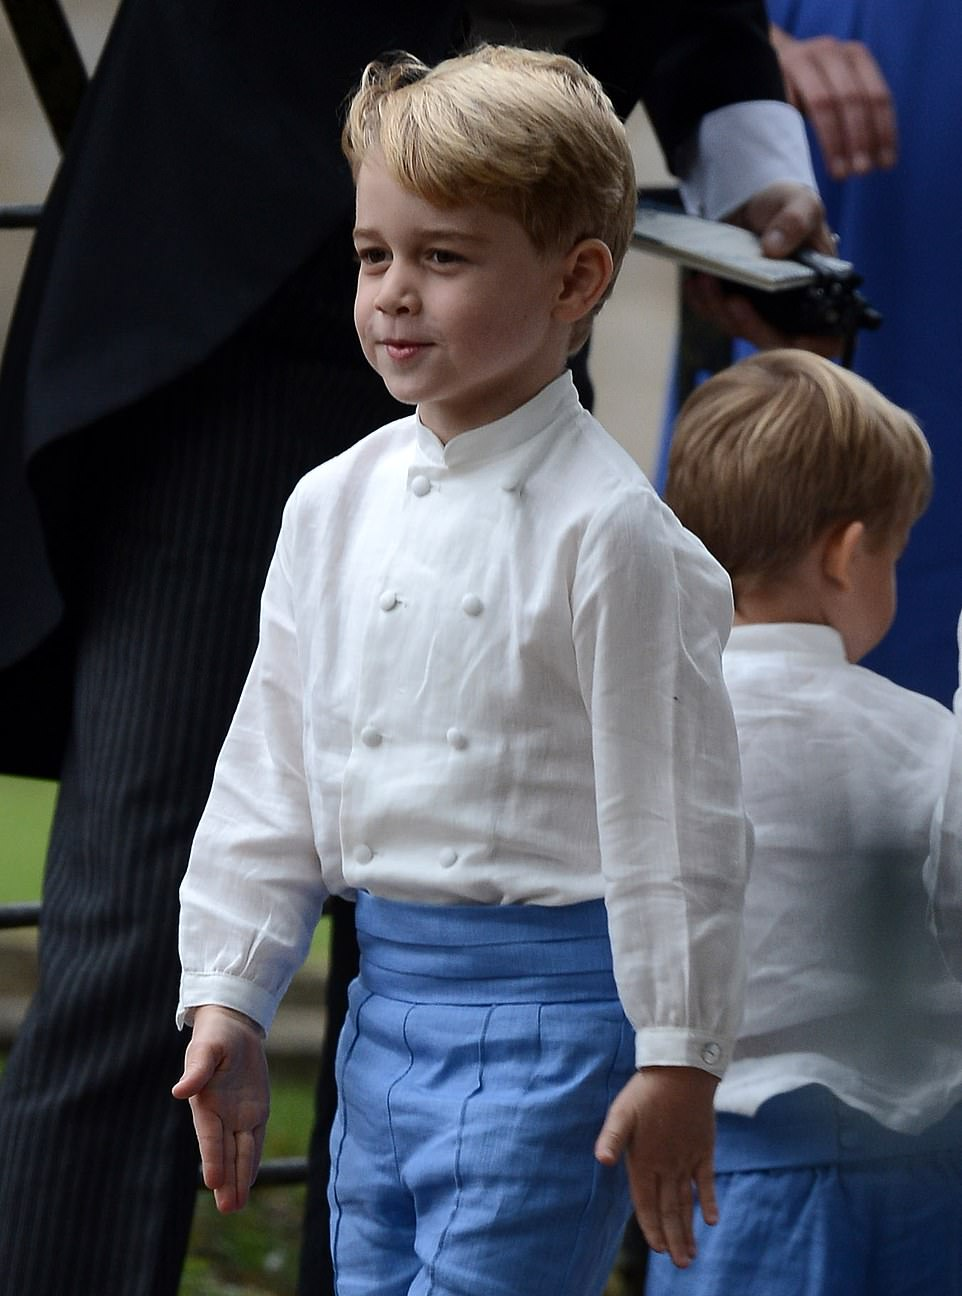 Five-year-old George laughed and giggled at the wedding– and even led his fellow pageboys in a game of soldiers